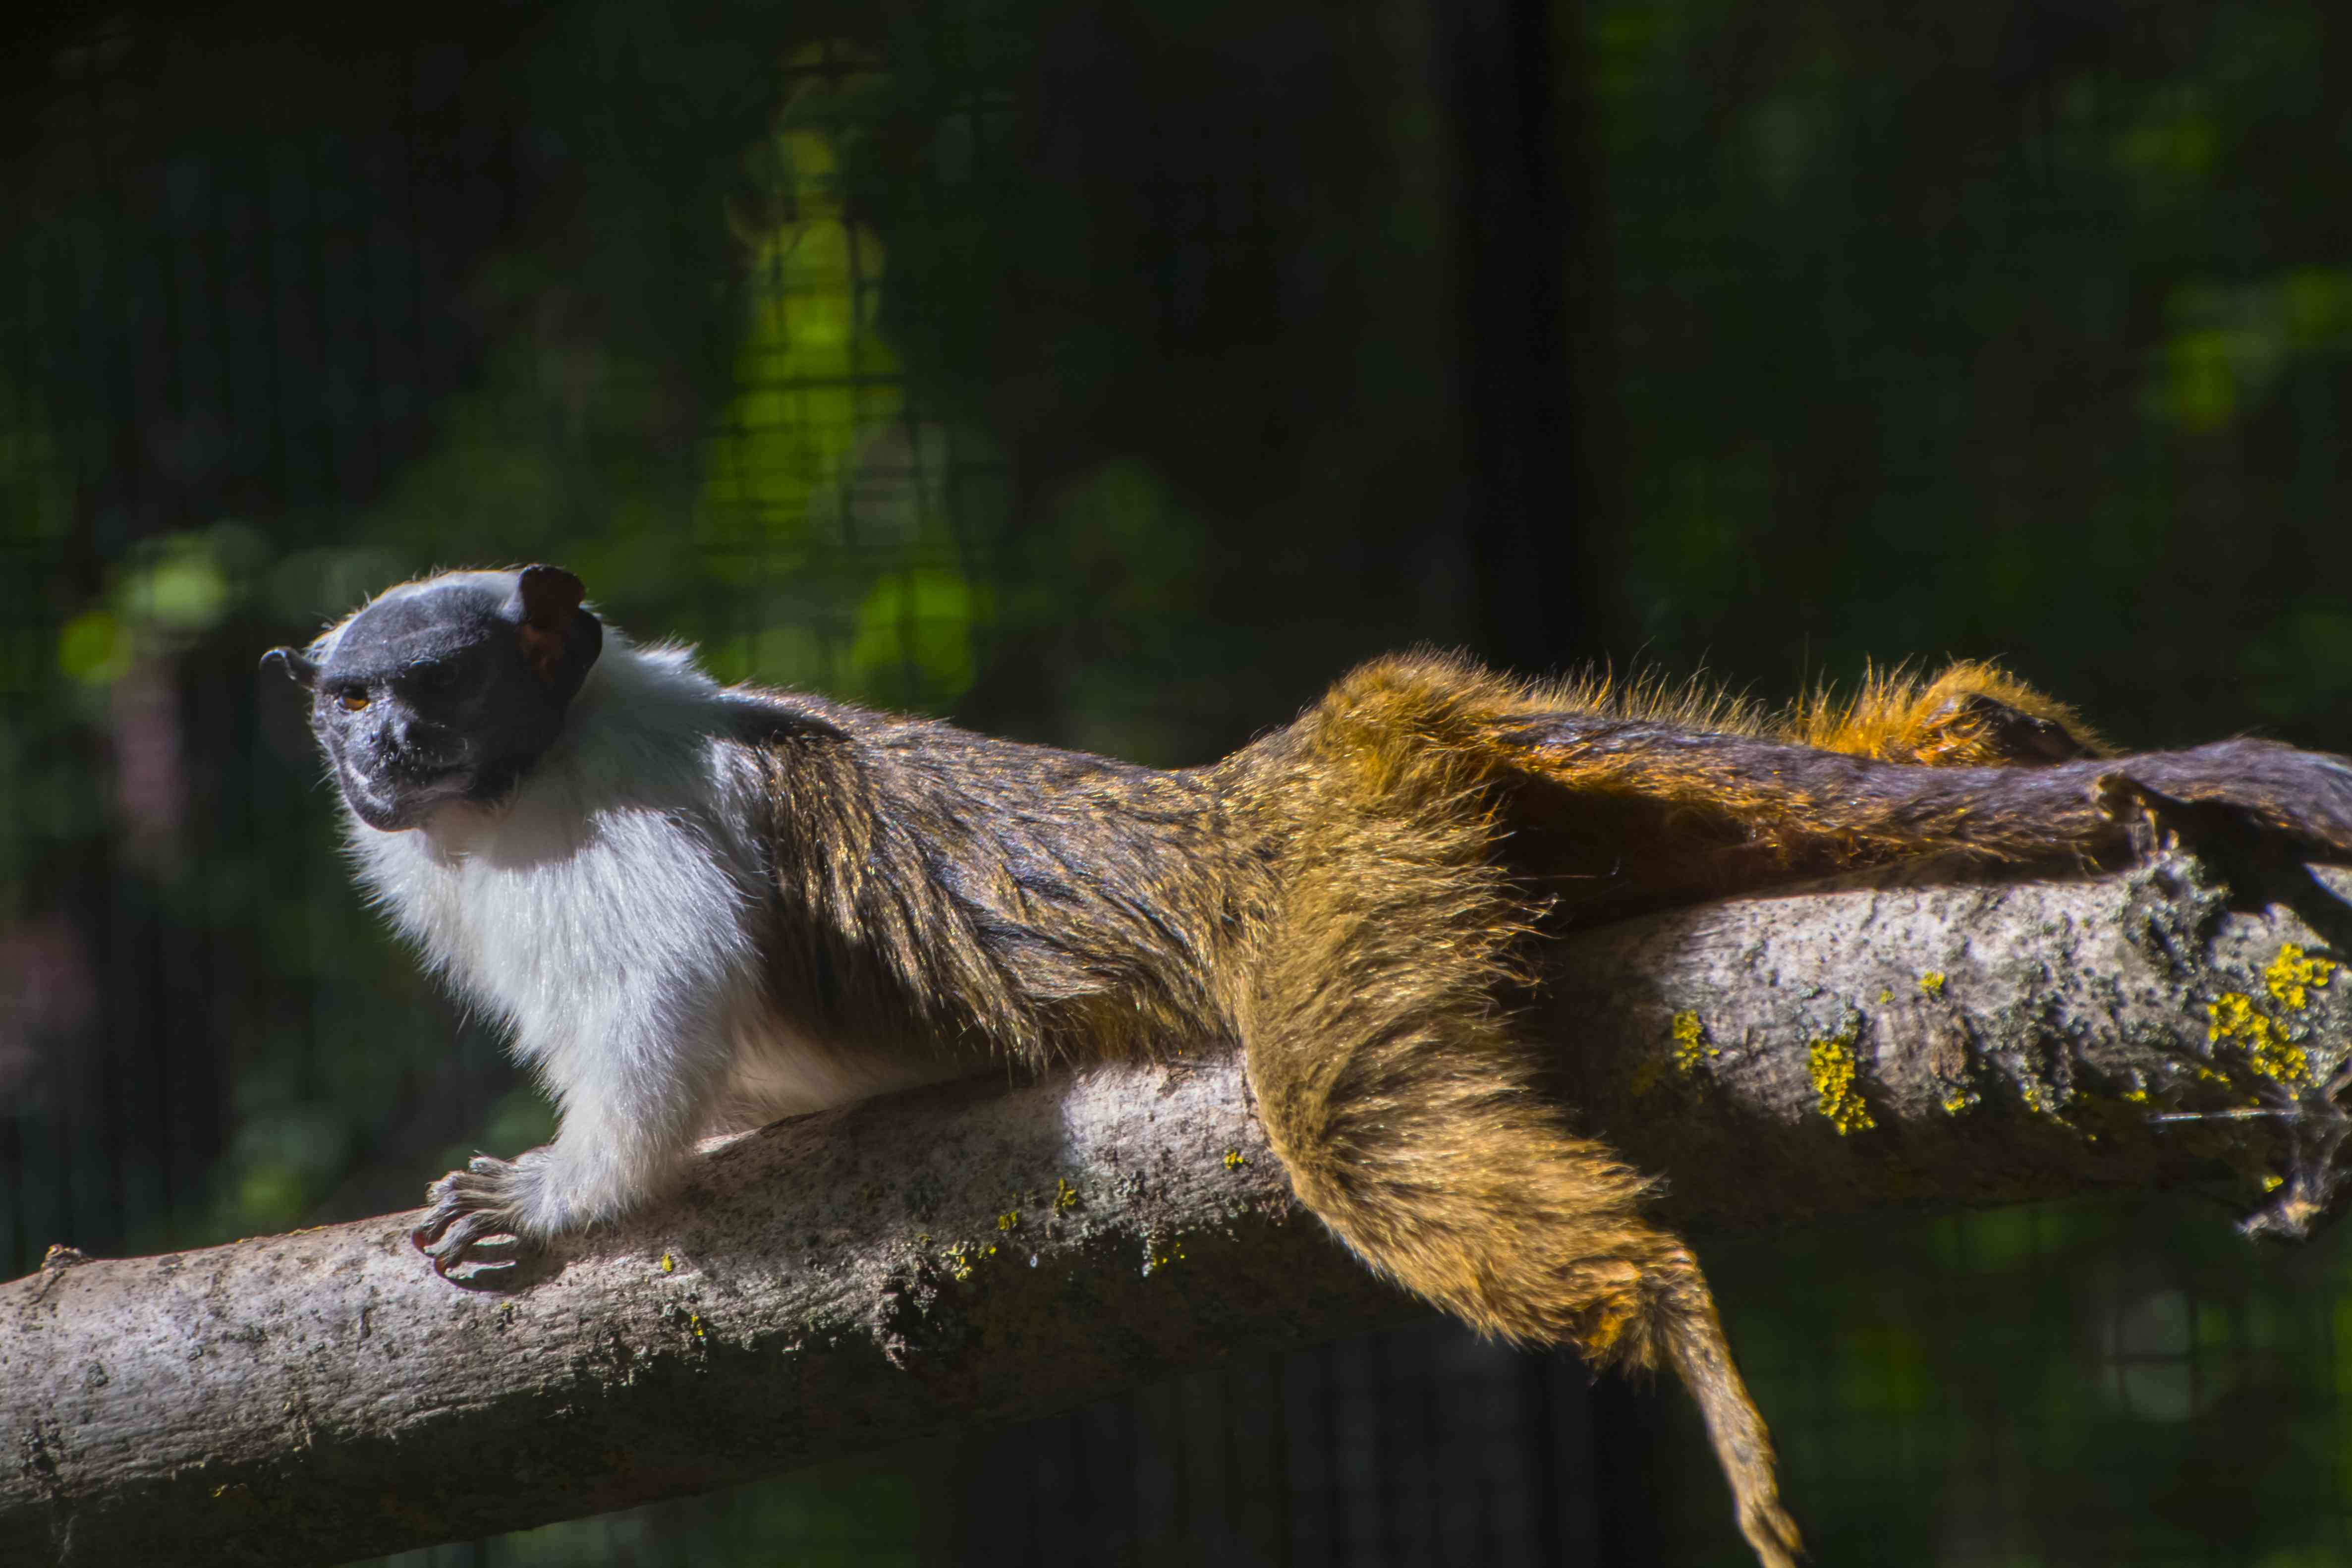 Pied bare-faced tamarin